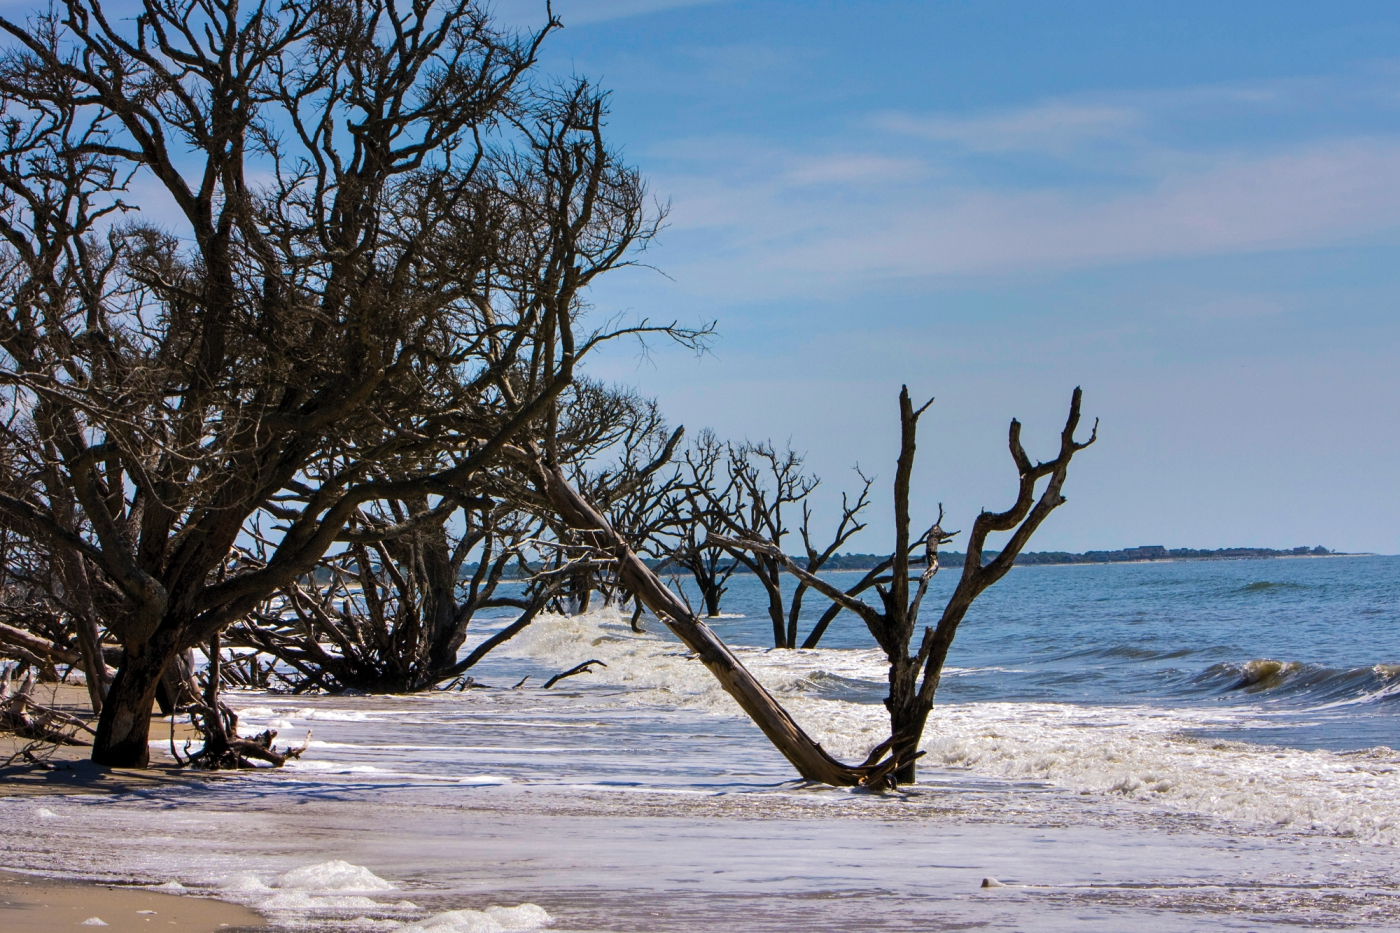 Take in the unique surroundings of Botany Bay on Edisto Island, South Carolina.